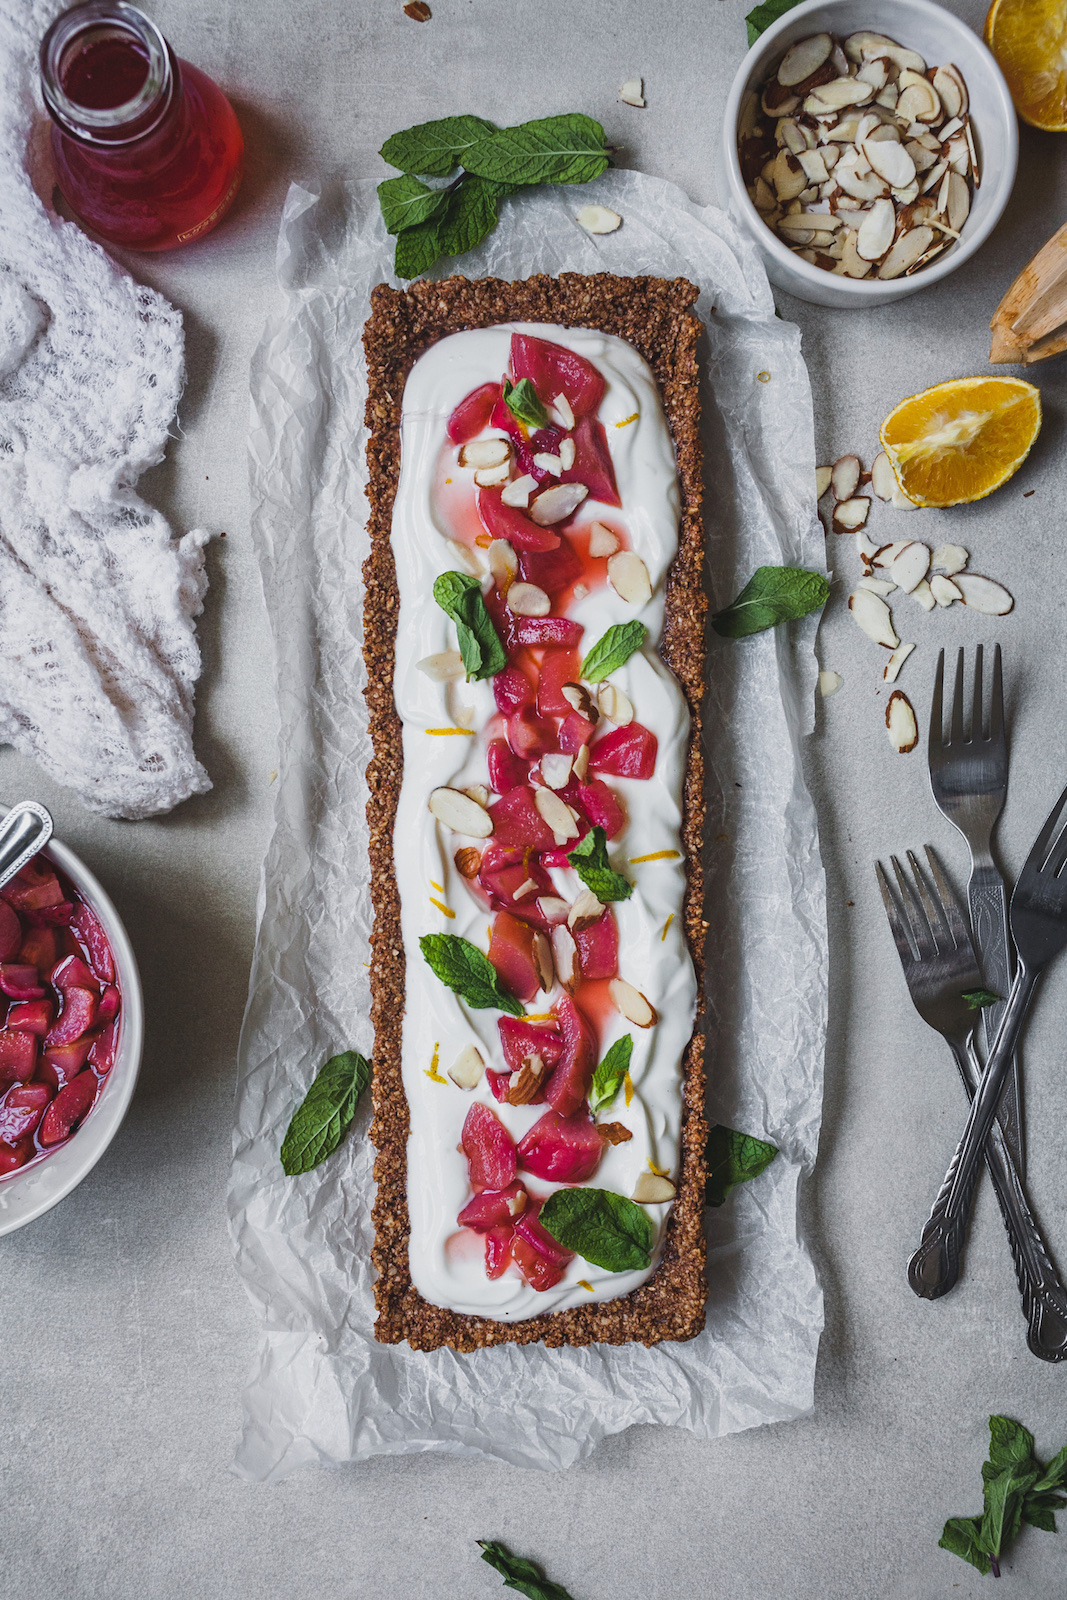 Greek Yoghurt Tart With a Poached Fruit Topping